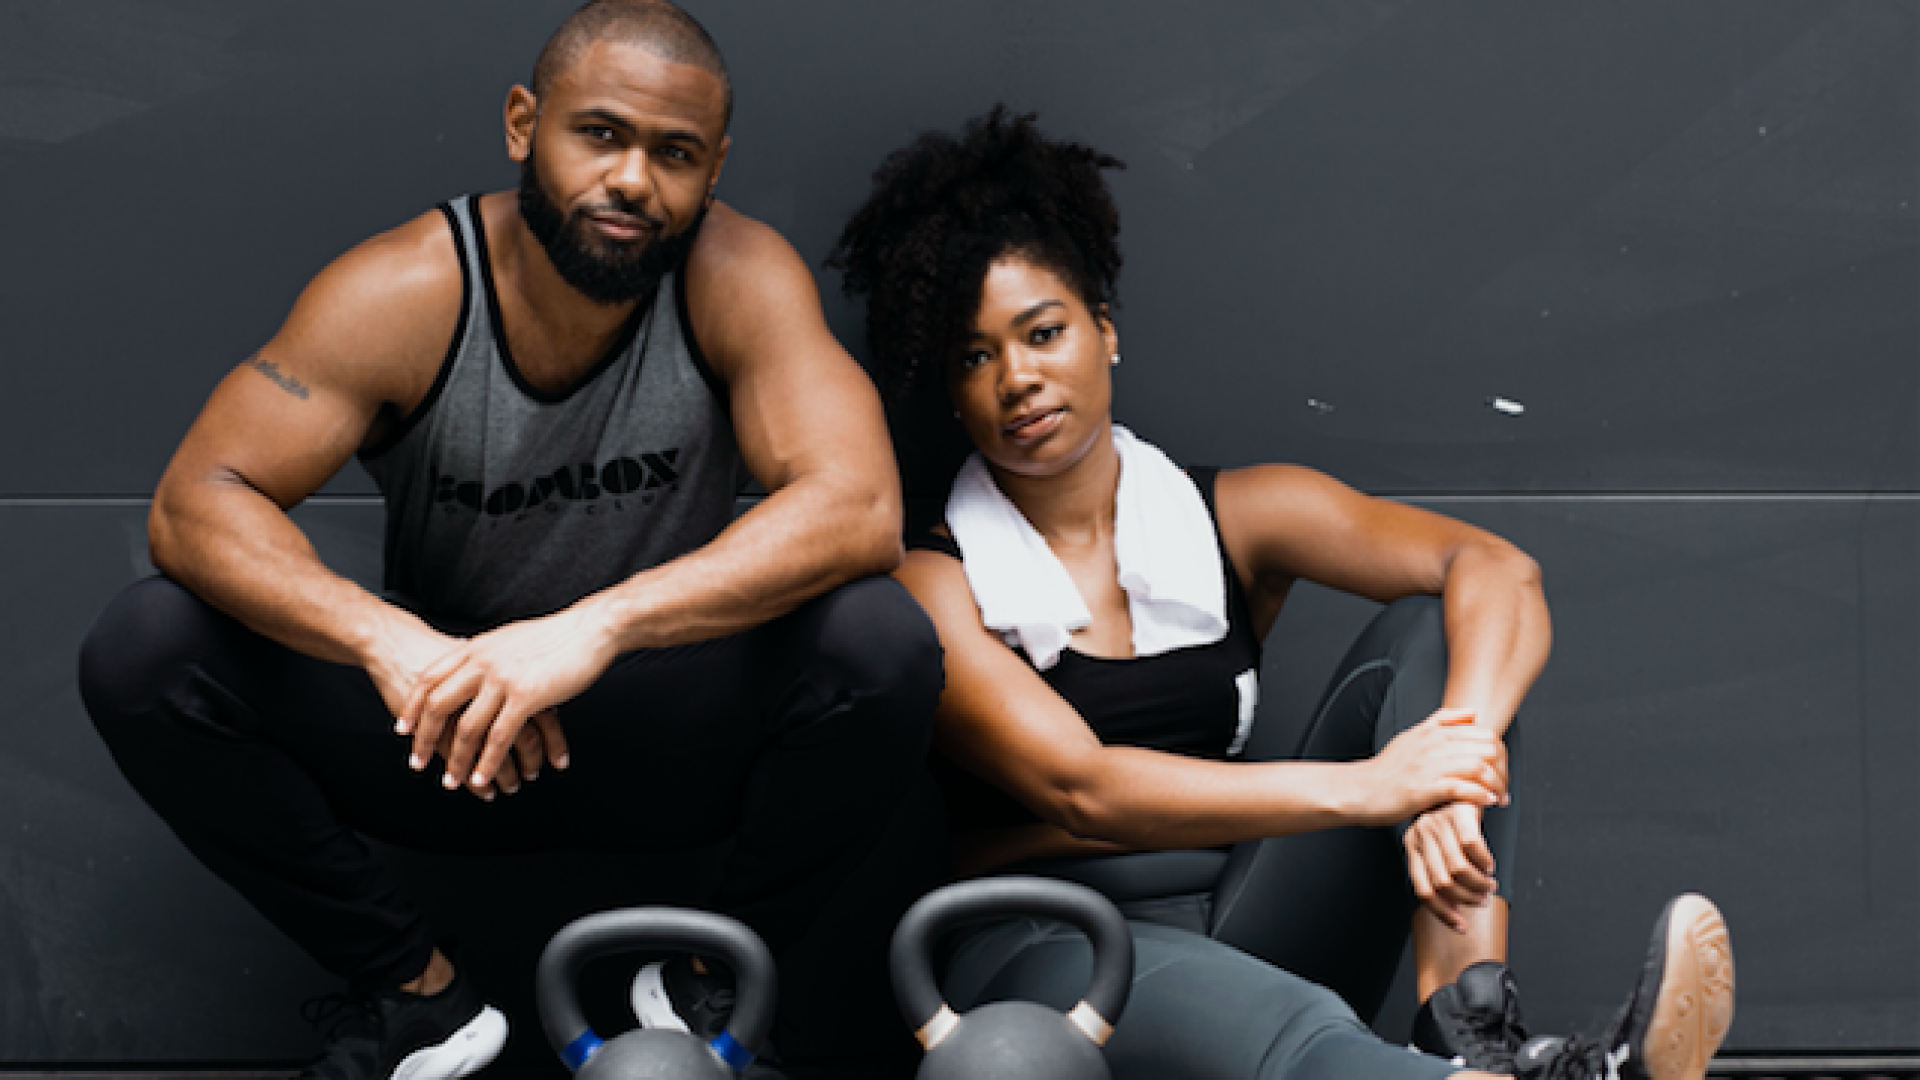 A Tinder Date Inspired D.C.'s Newest Black Owned Boxing Studio